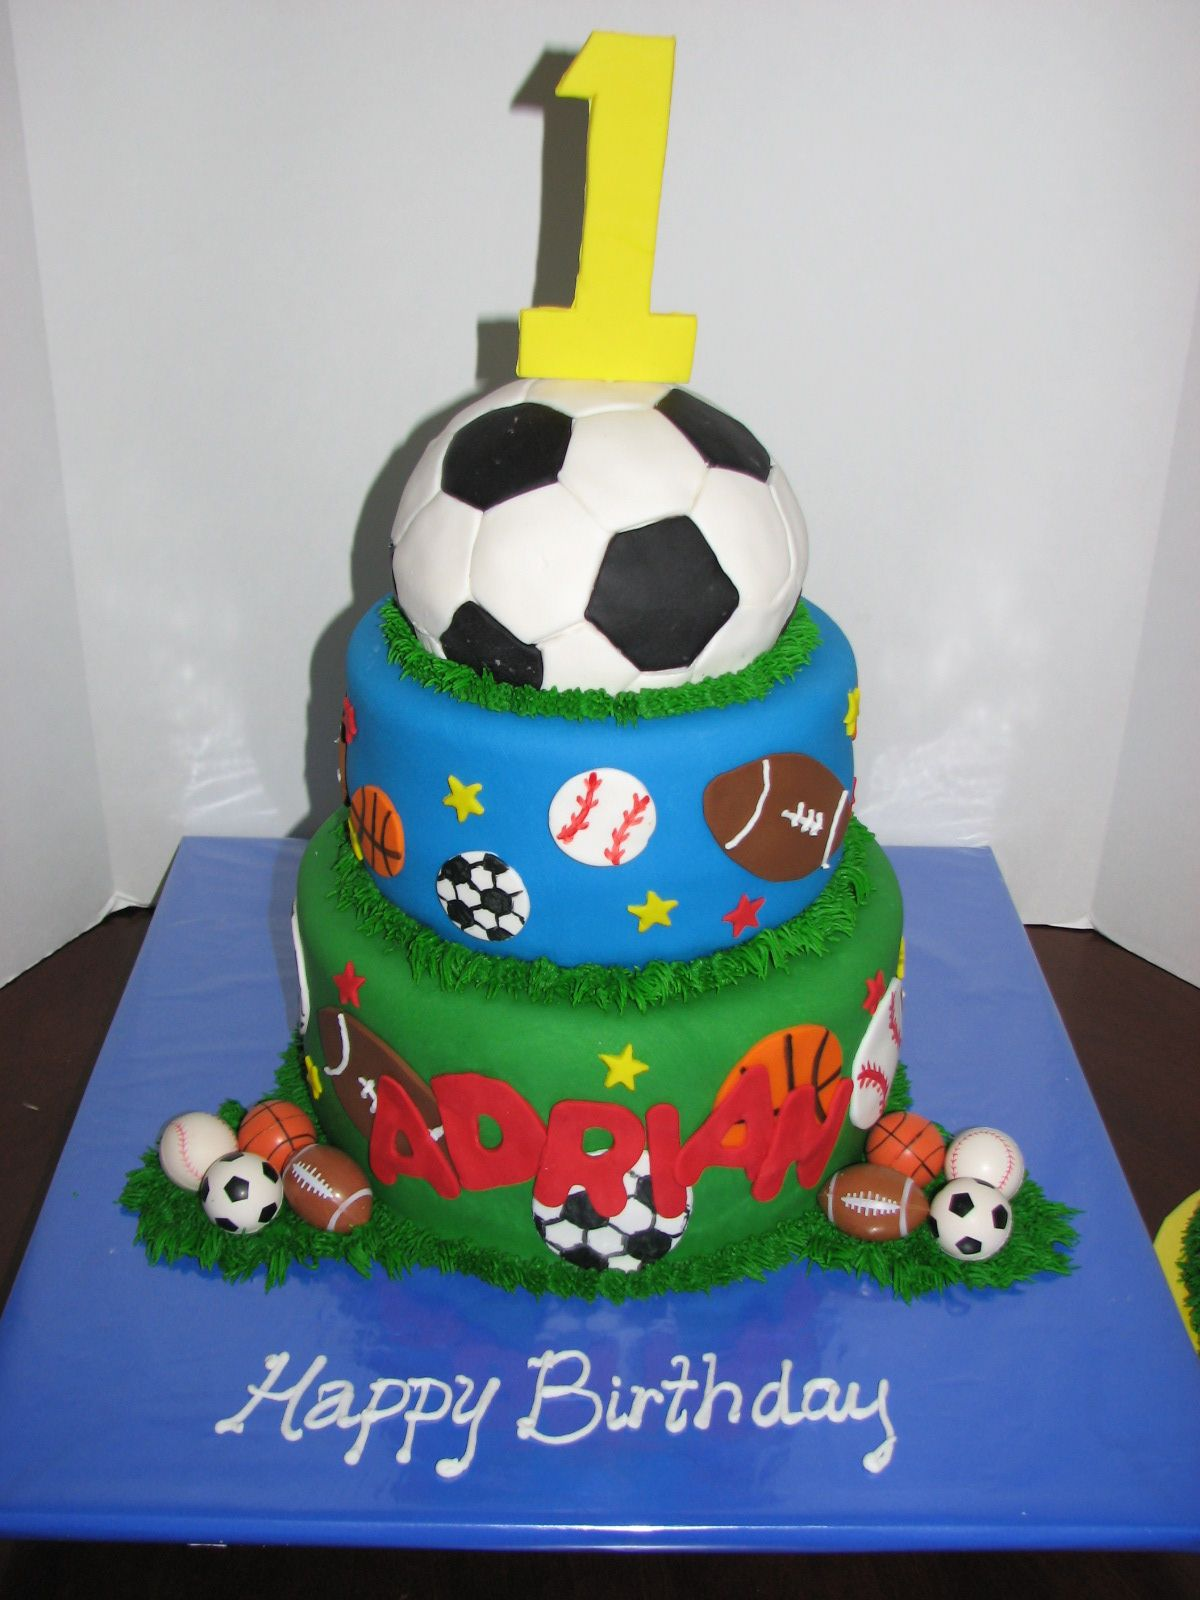 Sports Cake But With A Basketball On Top Minus The 1 On